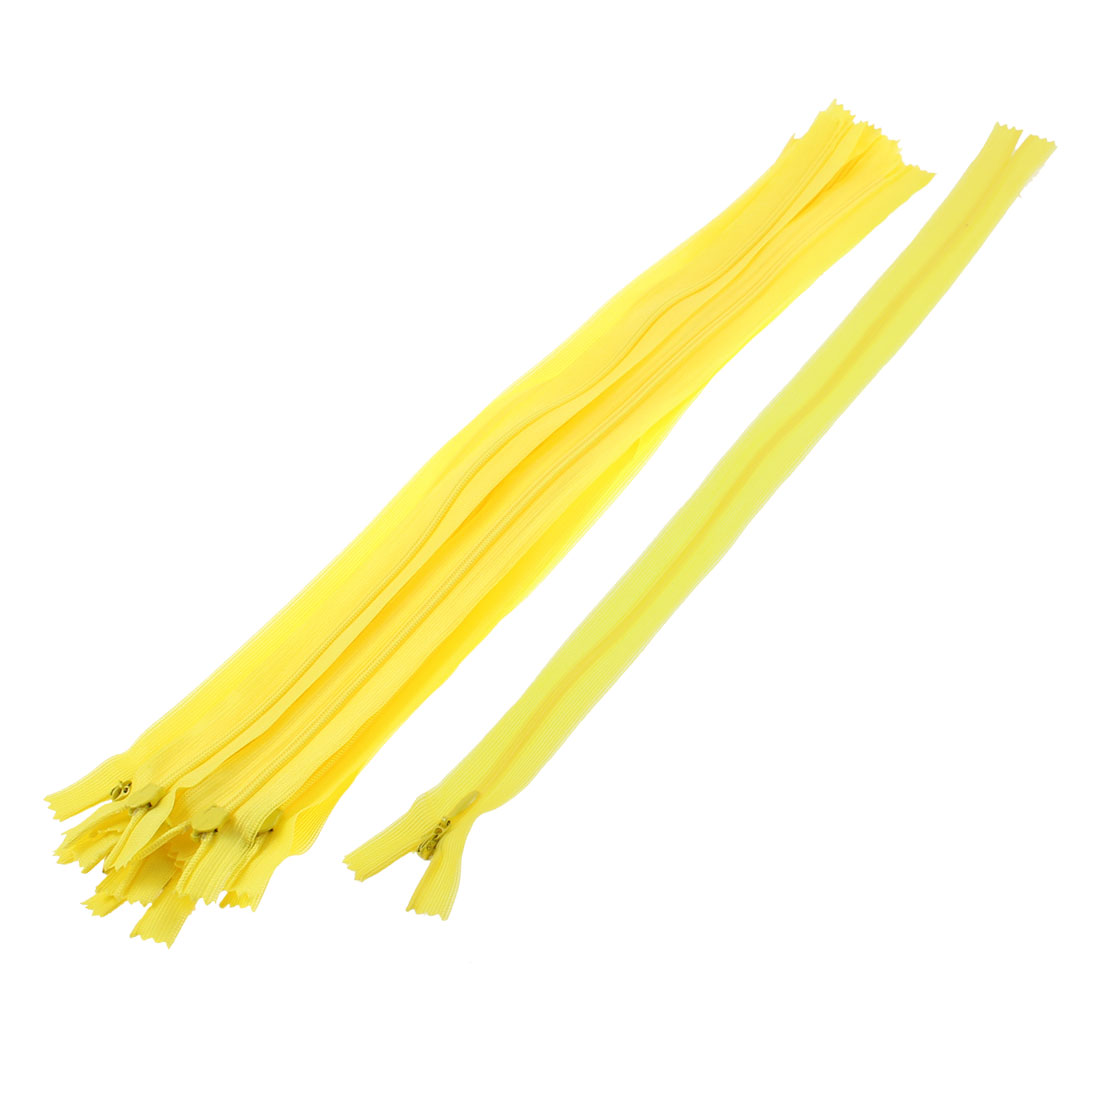 Dress Pants Closed End Nylon Zippers Tailor Sewing Craft Tool Yellow 40cm 10 Pcs